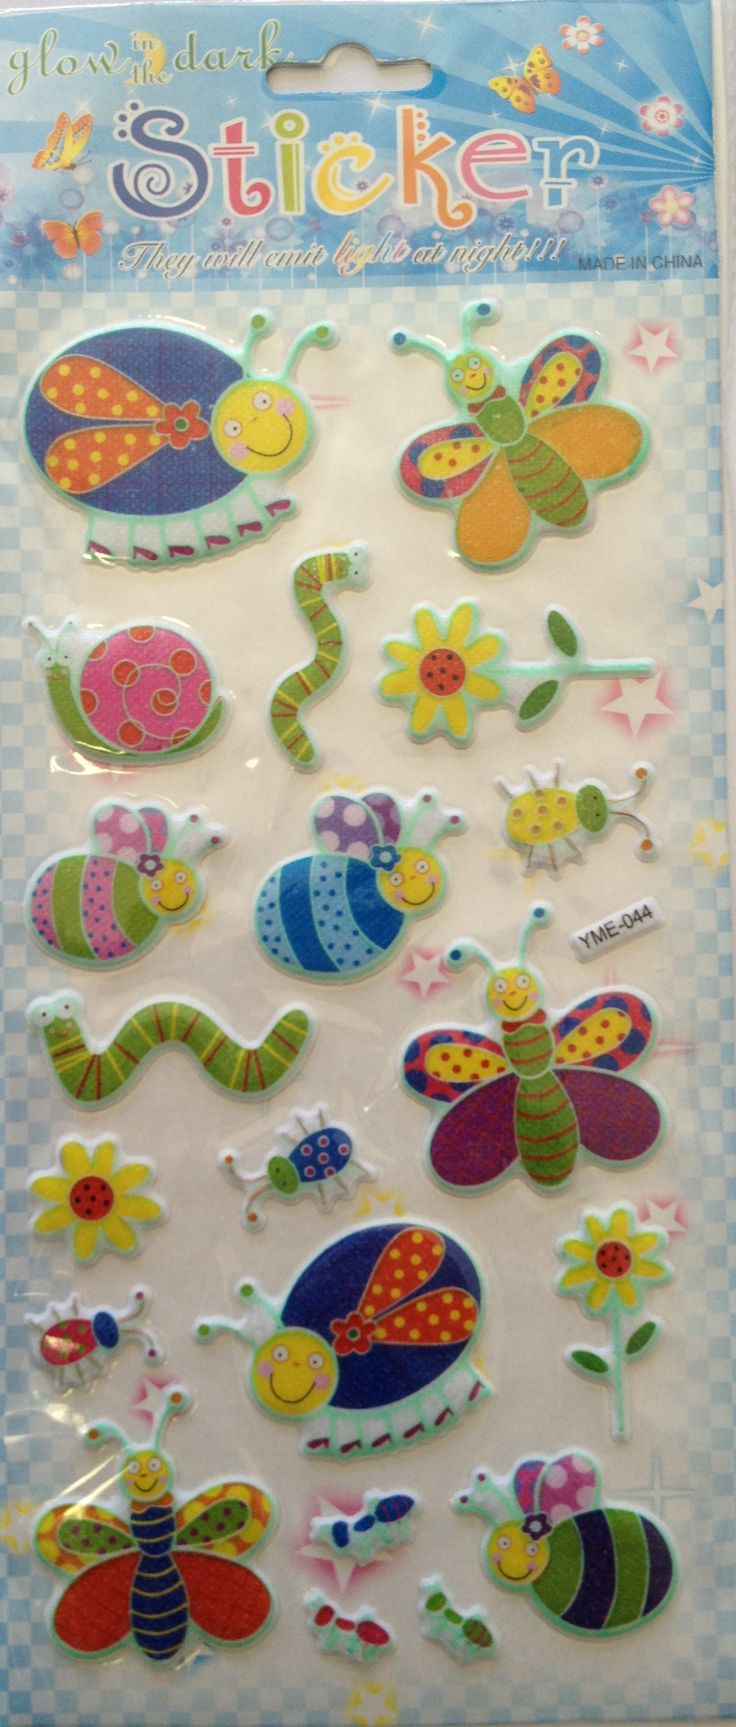 Narrow puffy stickers